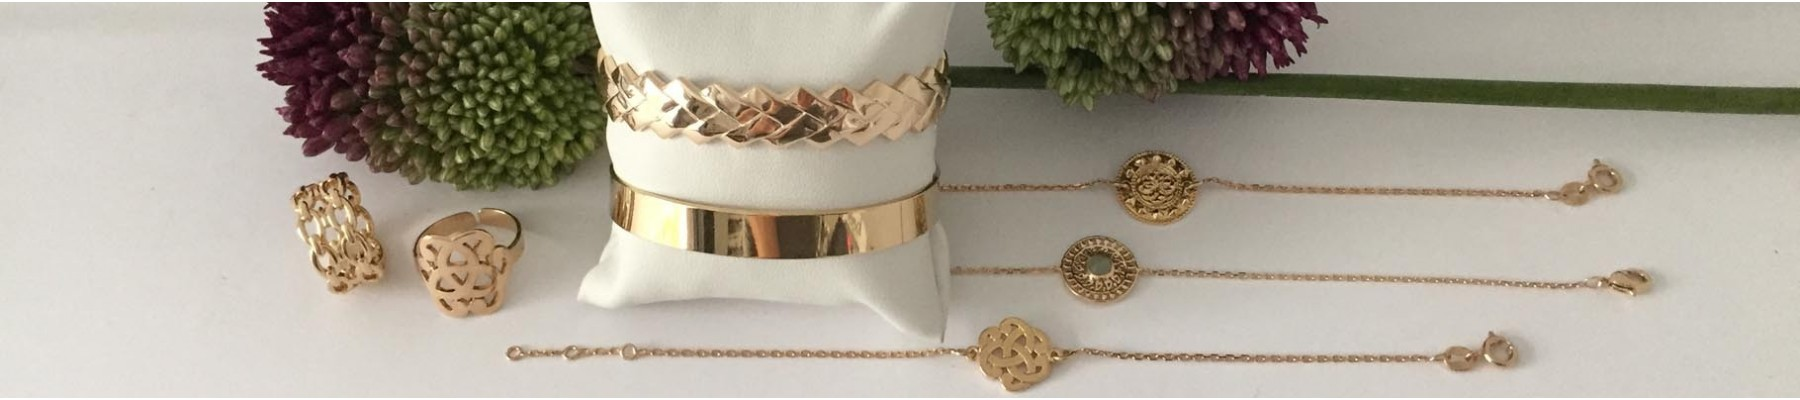 Elise B Gold plated jewels range